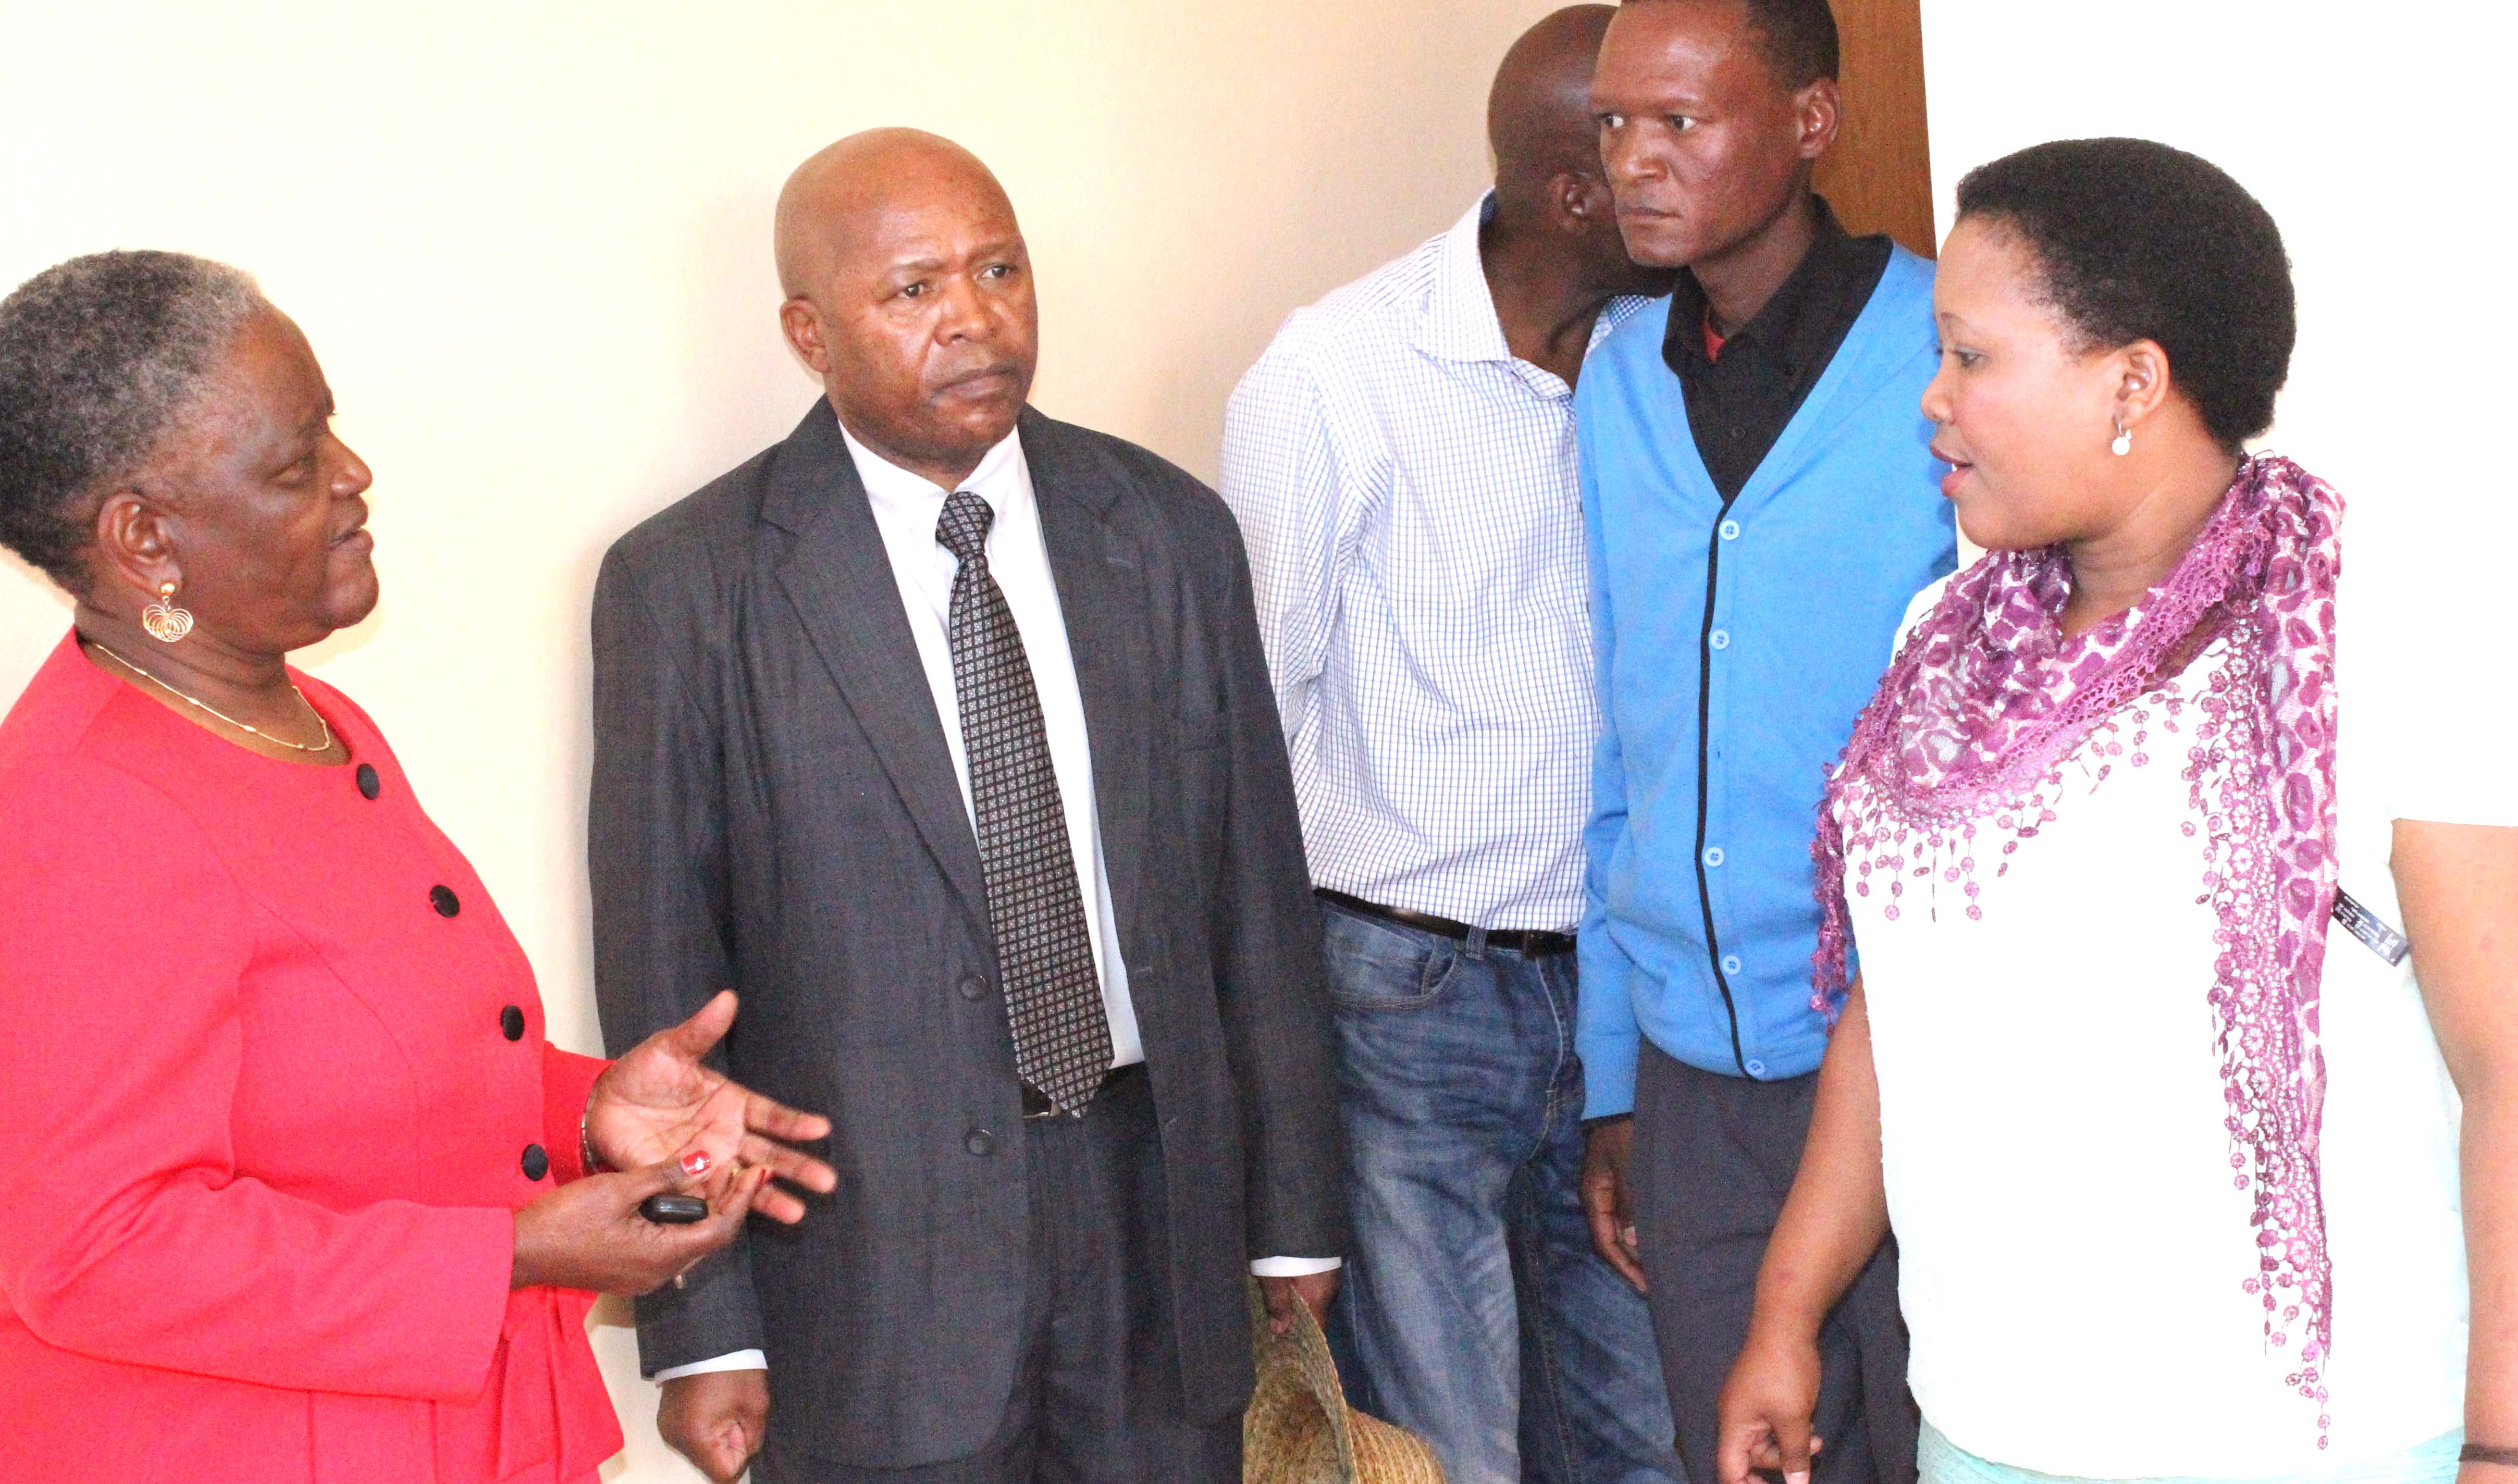 thabane rejects derelict govt accommodation times thomas thabane s wife maisiah thabane liabiloe ramoholi declined an offer of prime minister